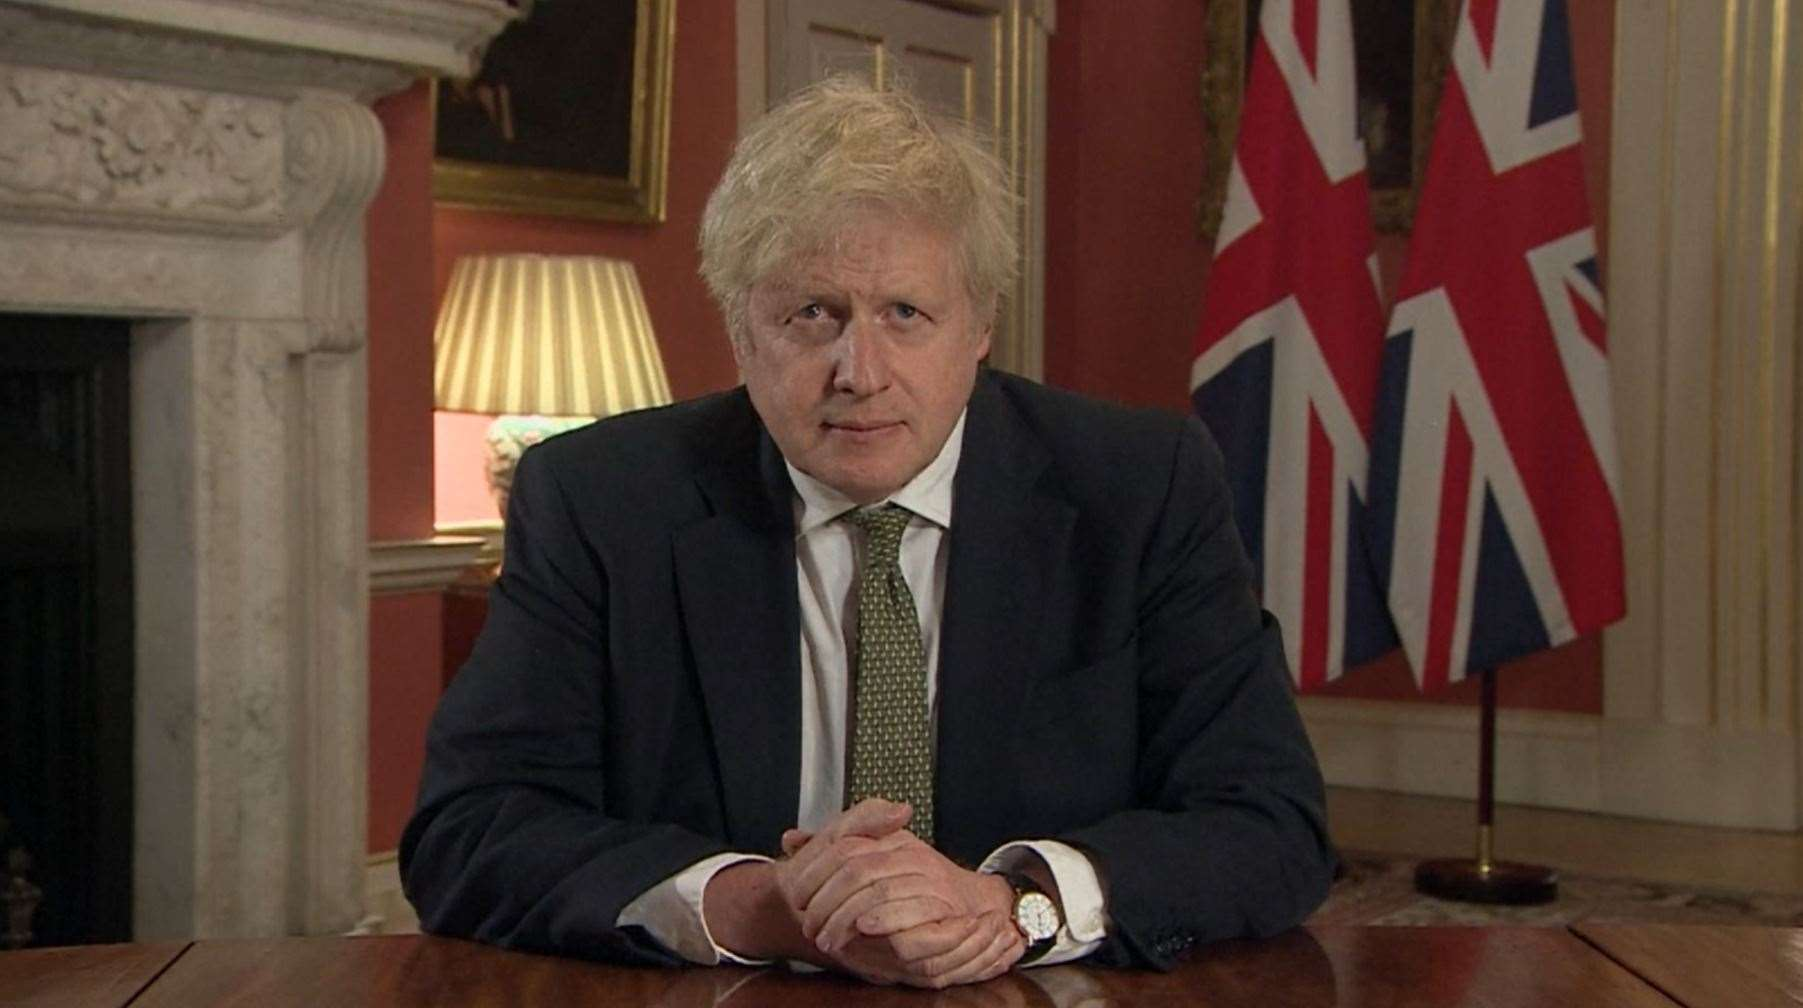 Prime Minister Boris Johnson, pictured during a televised address to the nation